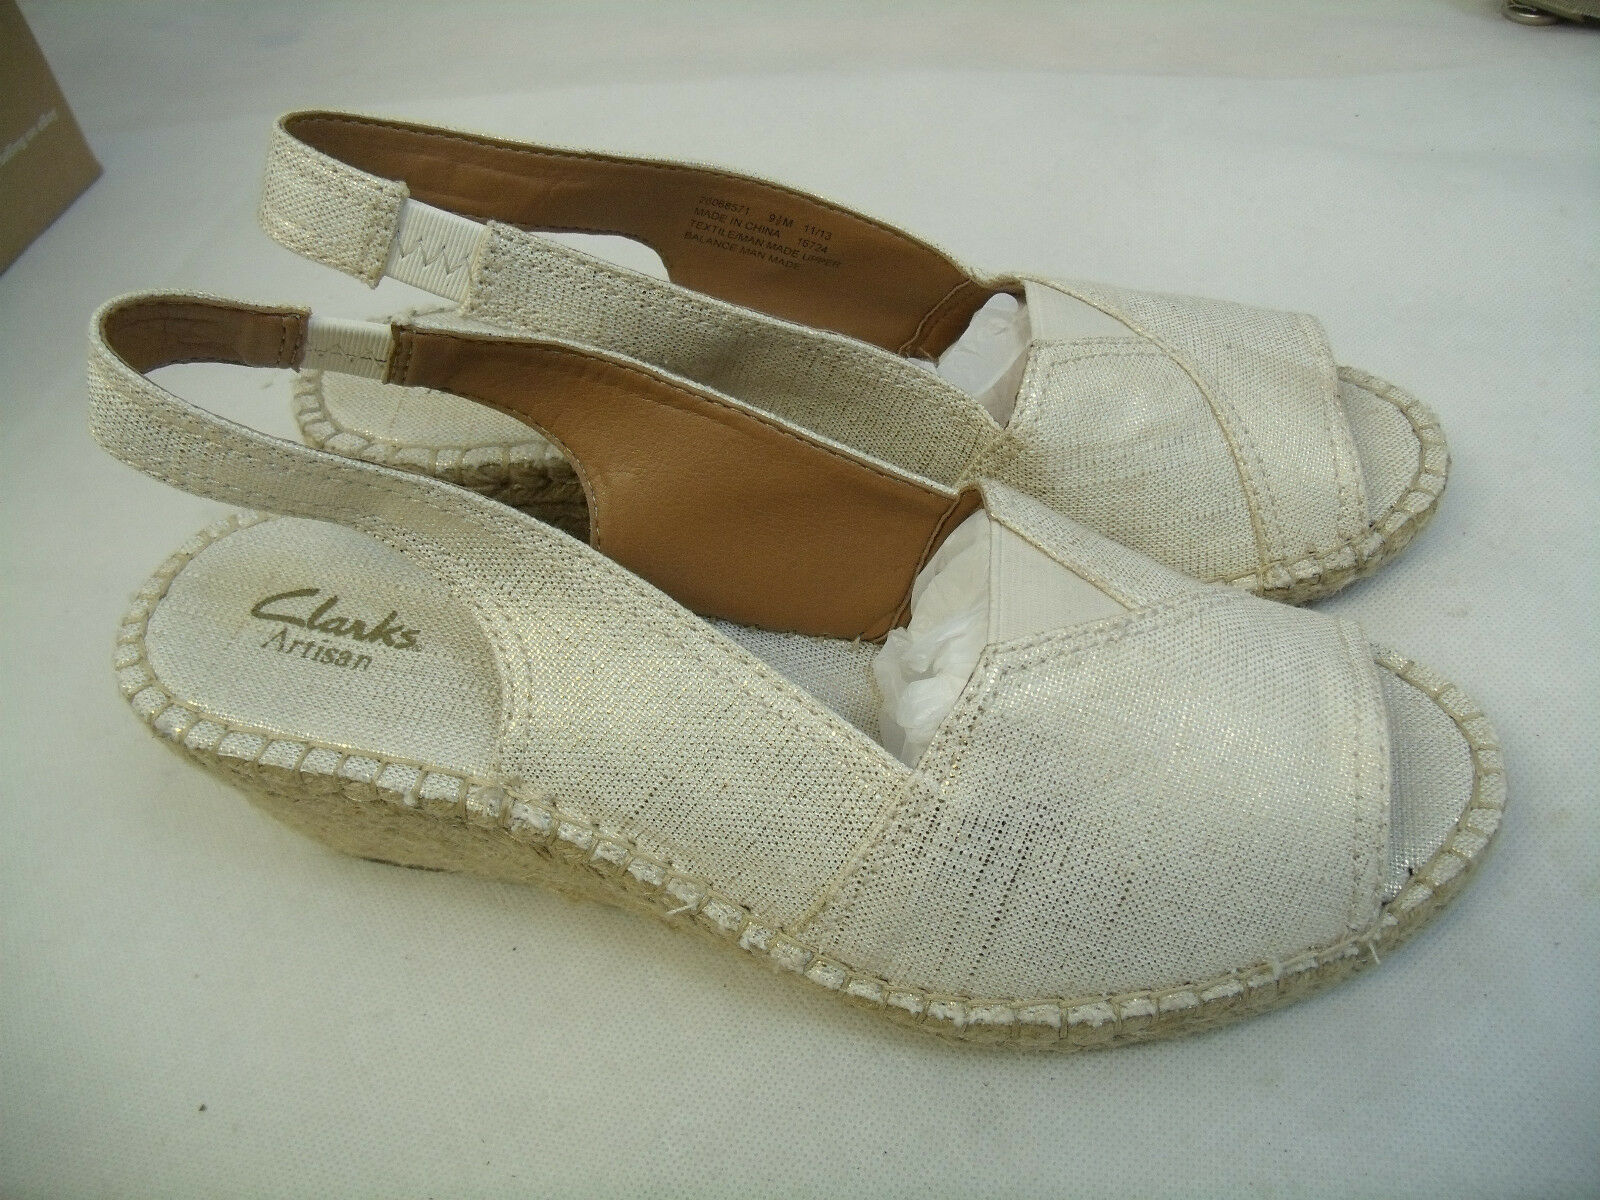 C68 CLARKS PEEP ARTISAN SLINGBACK OFF WHITE PEEP CLARKS SANDALS  SIZE 9.5M  MINT CONDITION f3be27